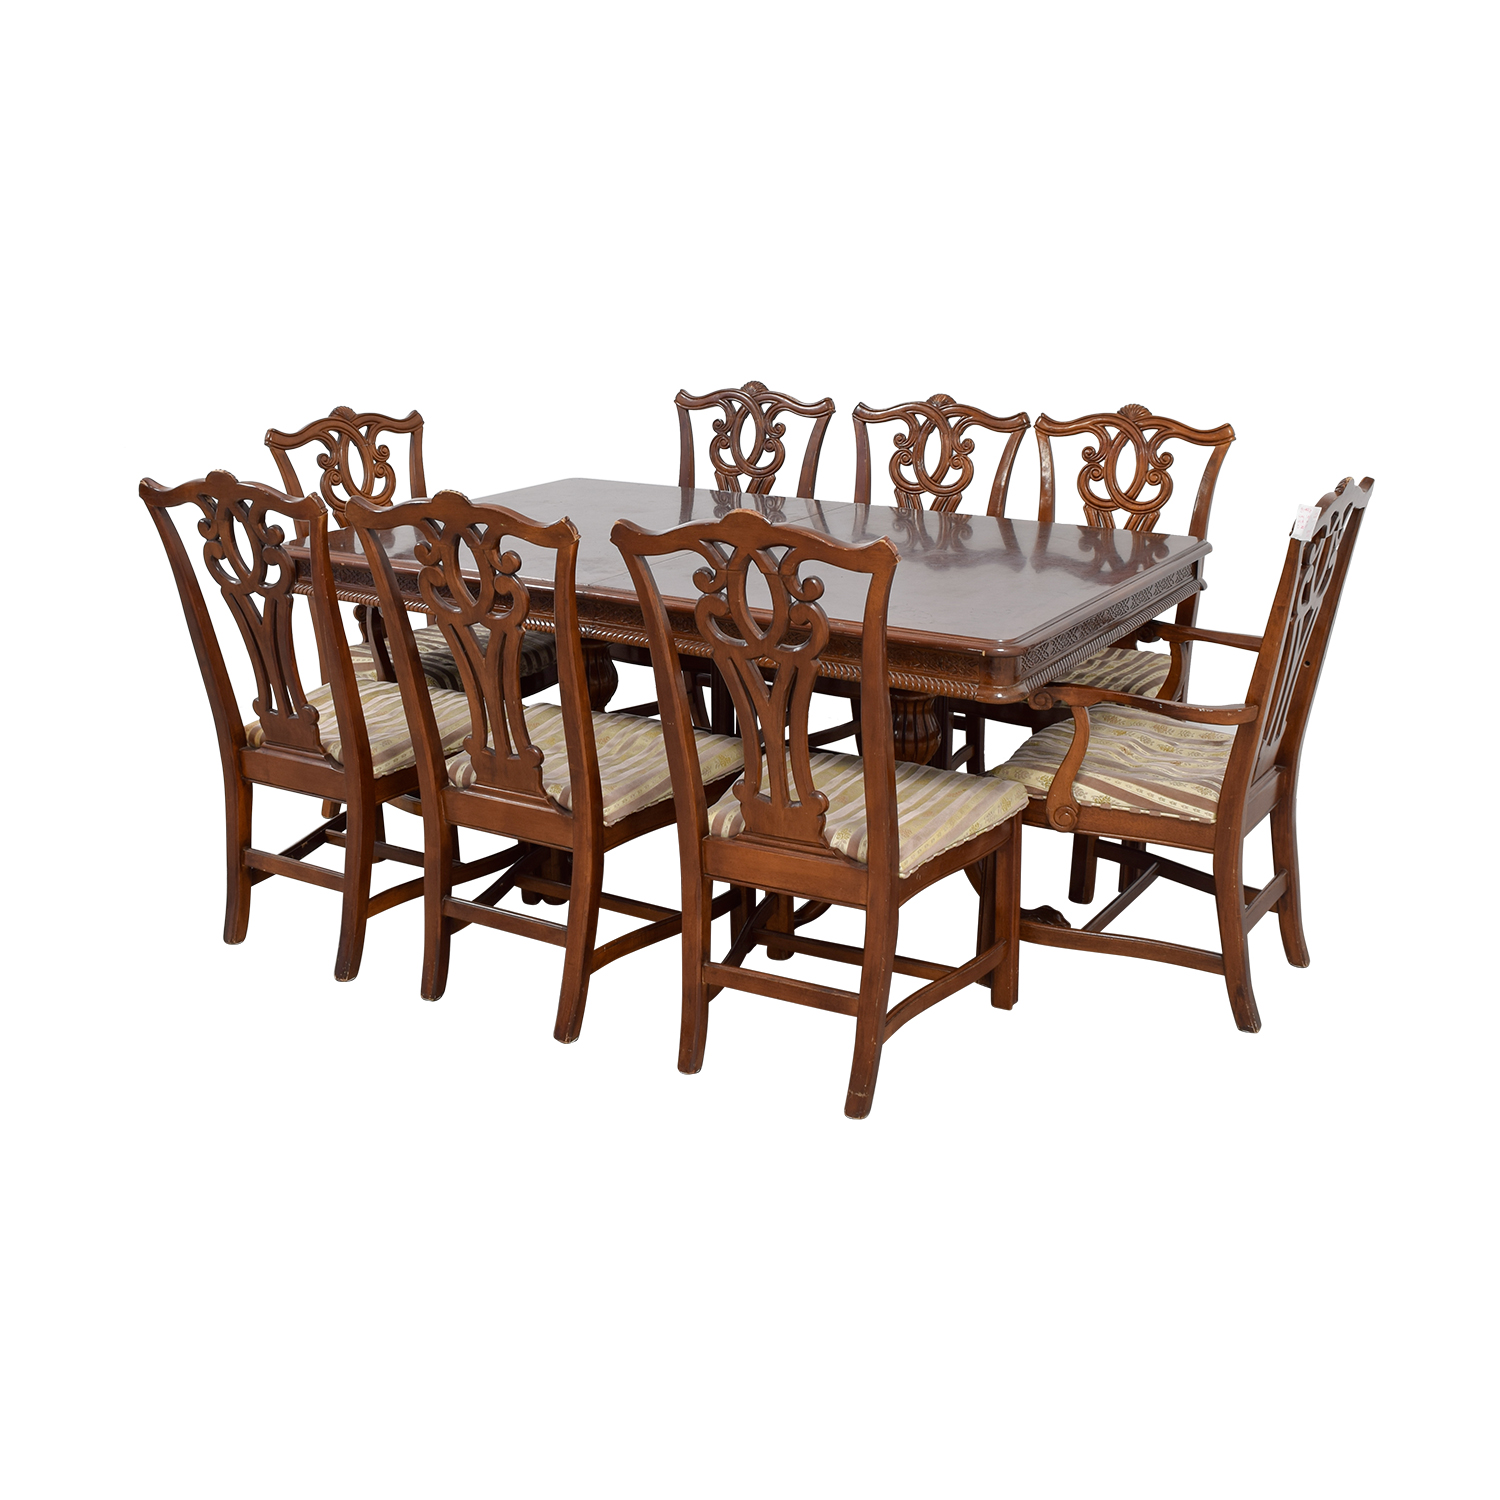 90 Off Carved Wood Dining Set With Two Extensions And